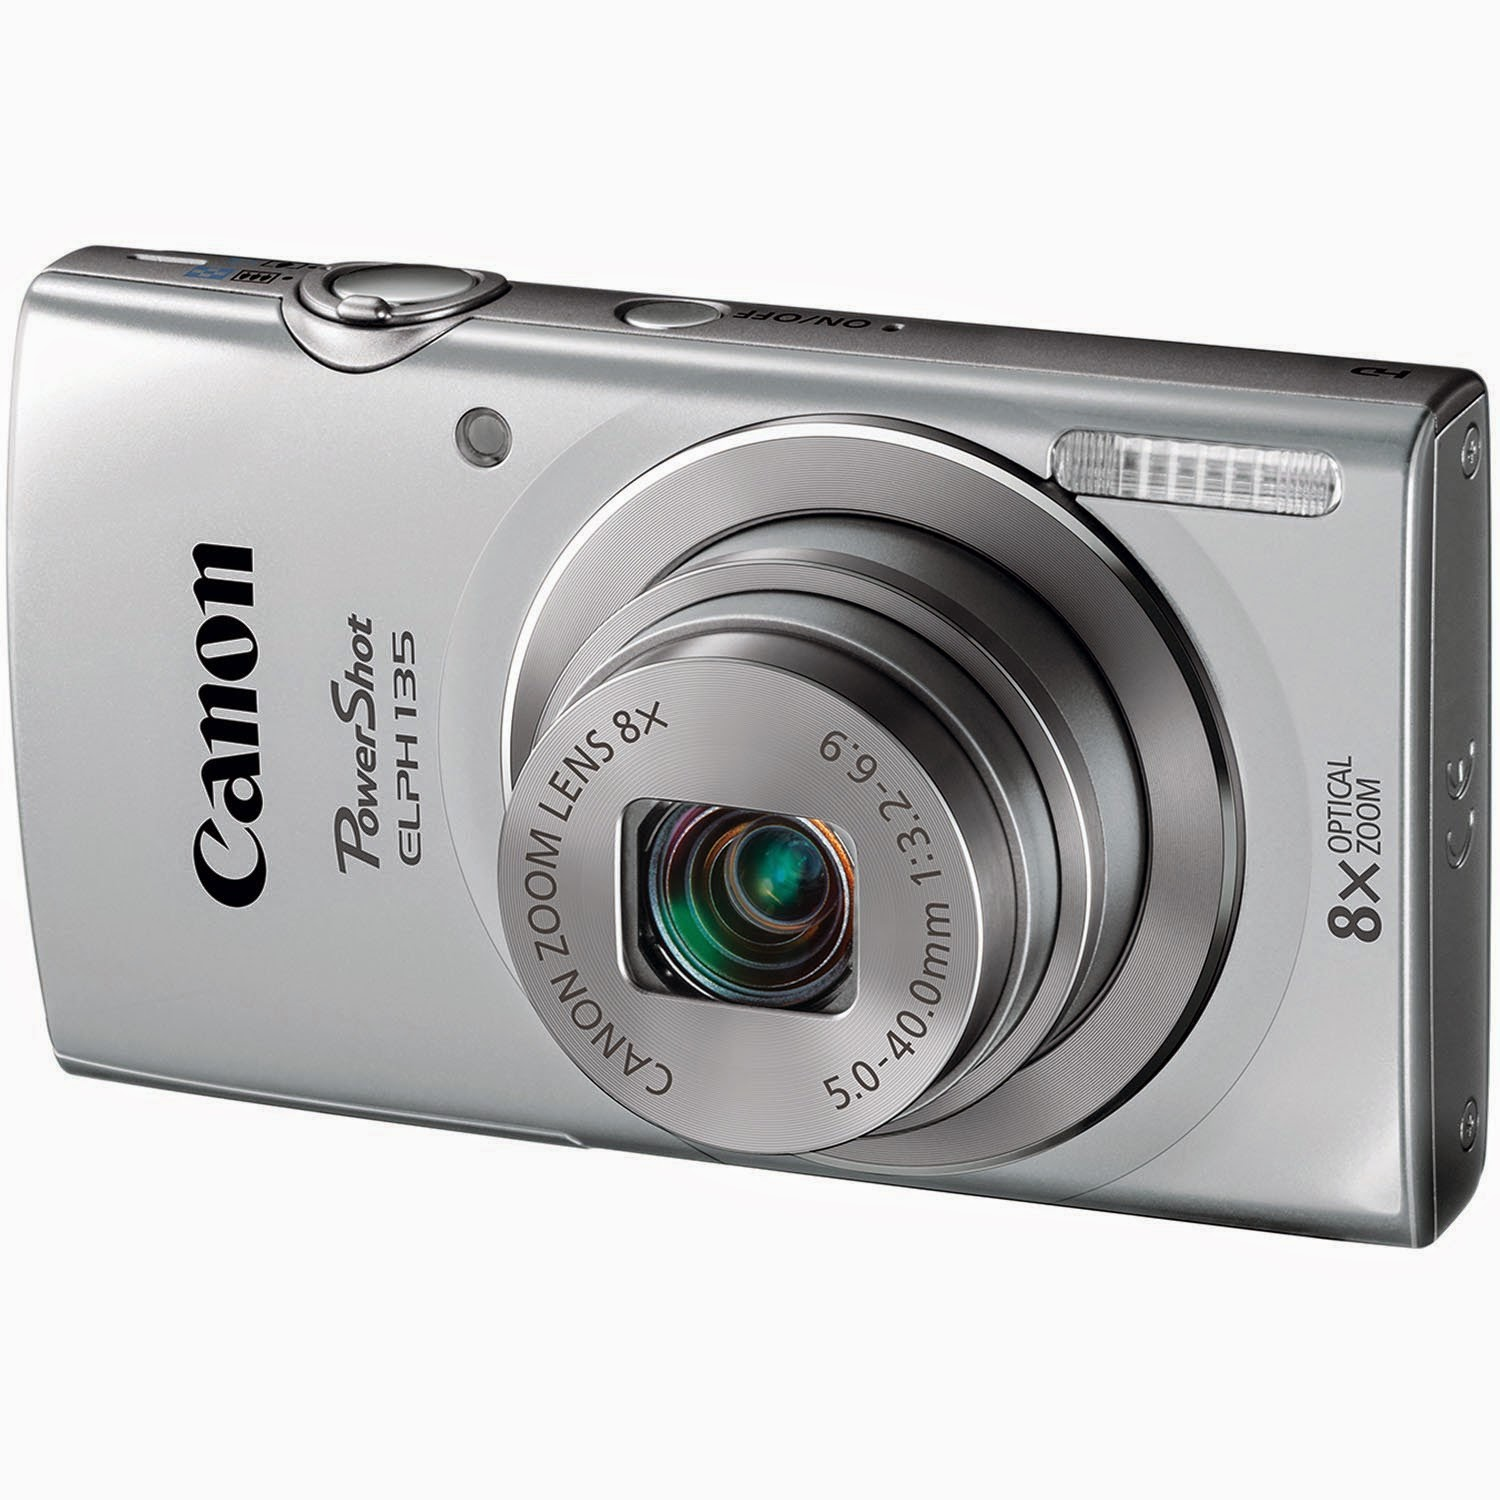 Canon PowerShot ELPH 135, digital camera, canon digital camera, new digital camera, video, creative effects, canon camera